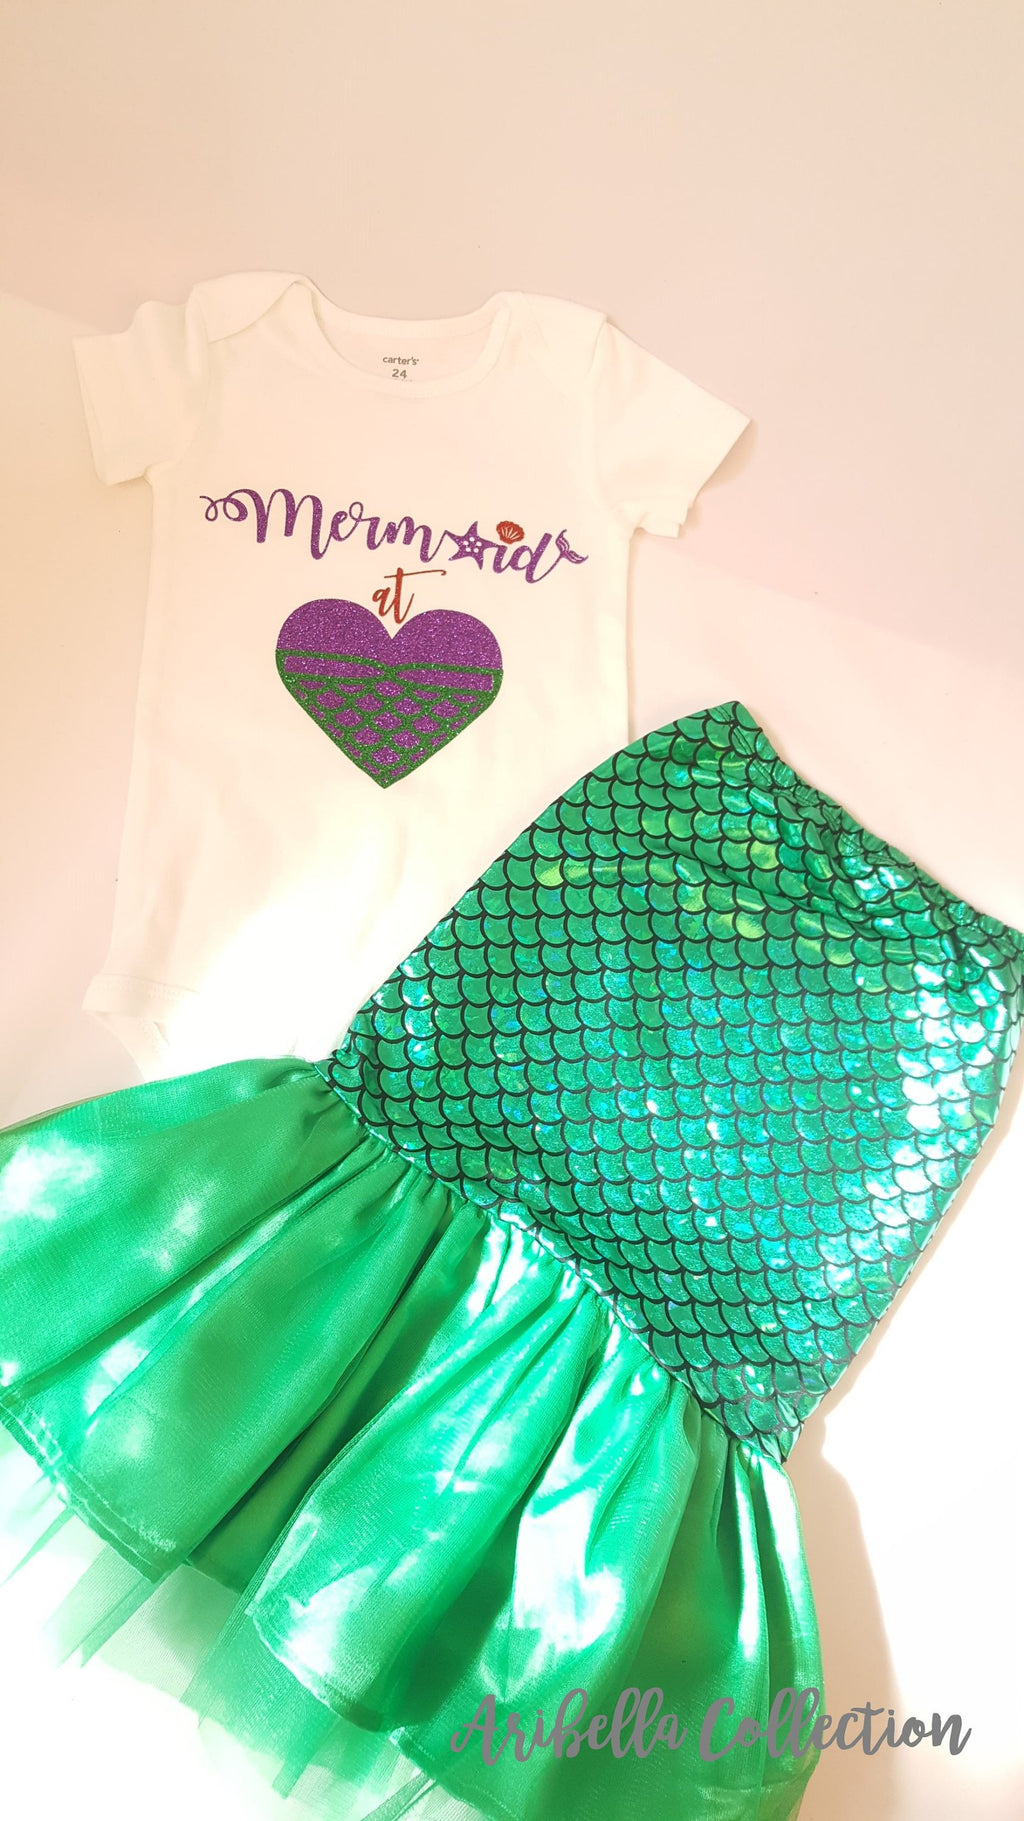 Mermaid At Heart Outfit Set - Glitter Bodysuit or T-shirt, Walkable Tail Skirt, Hair Clip Bow - Aribella Collection